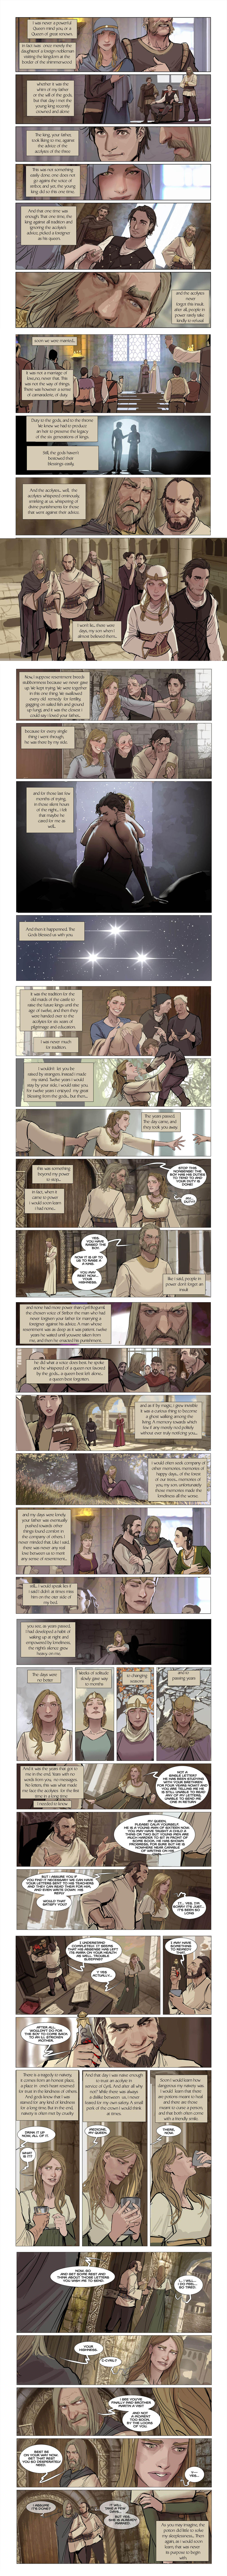 the queen and the woodborn episode 2